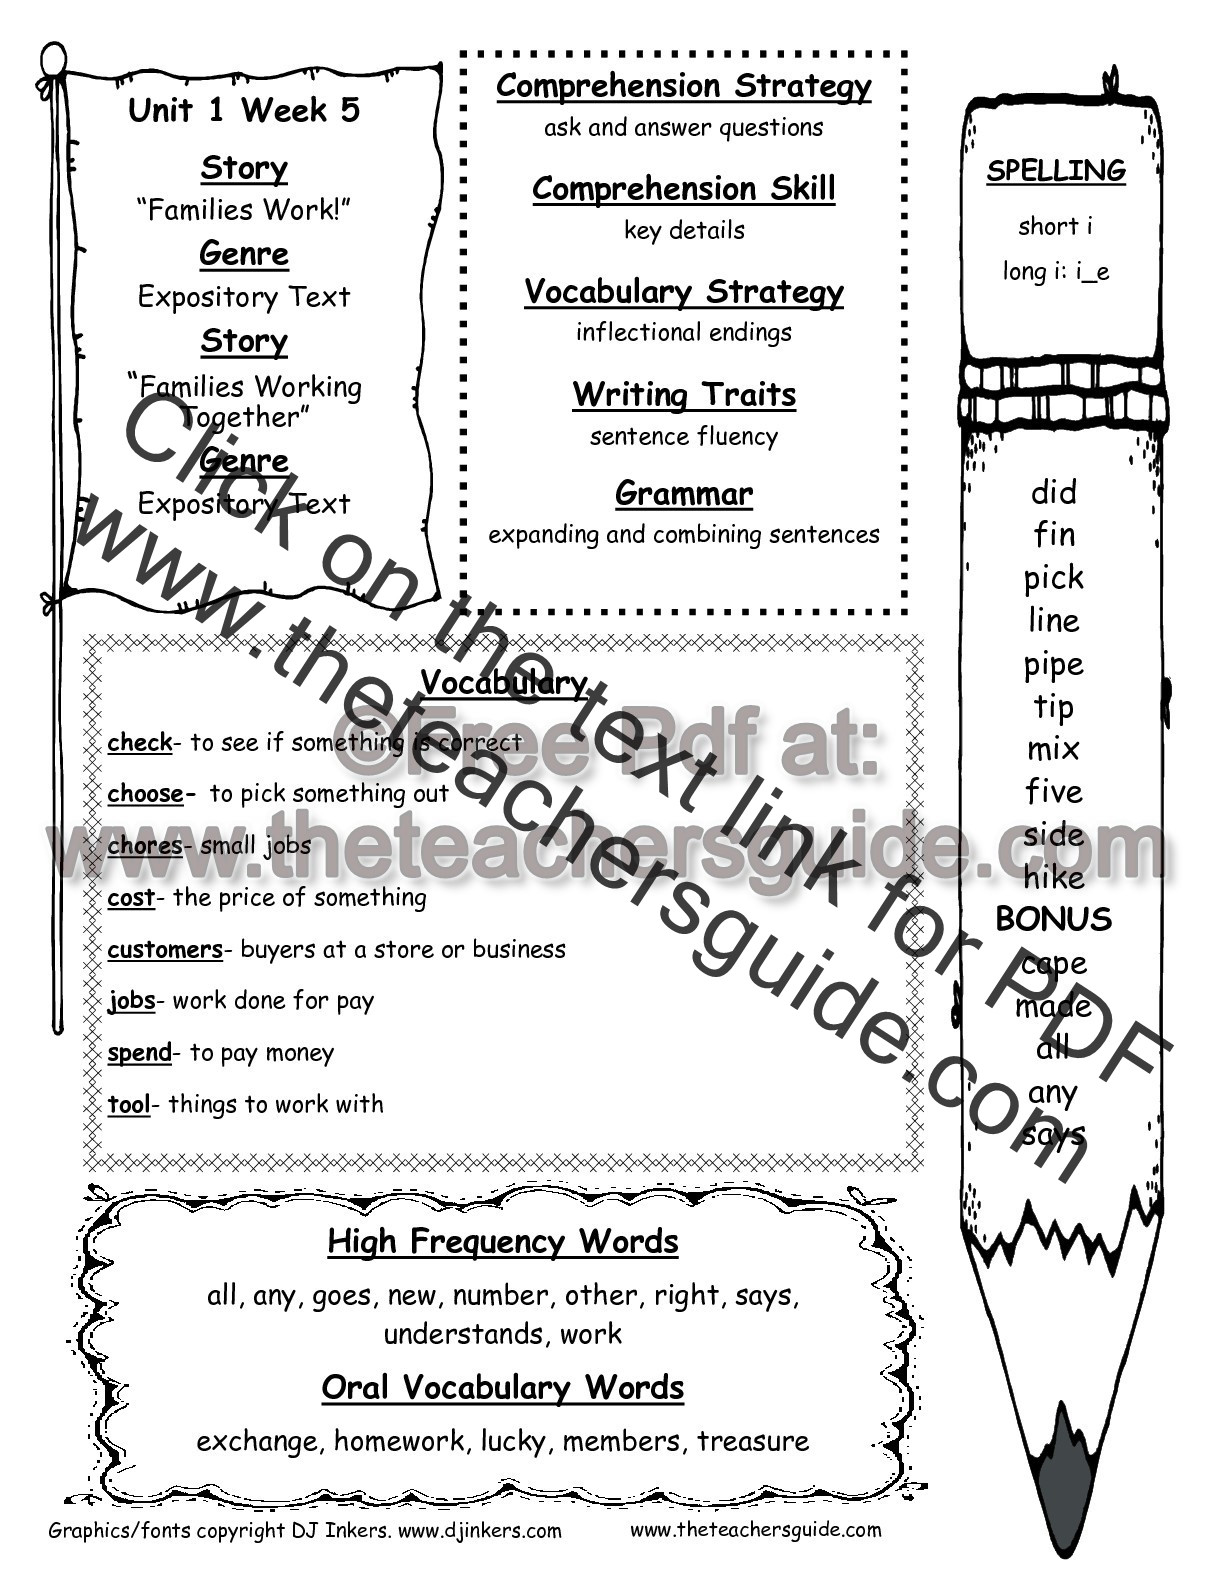 Possessive Noun Worksheet 2nd Grade Wonders Second Grade Unit E Week Five Printouts